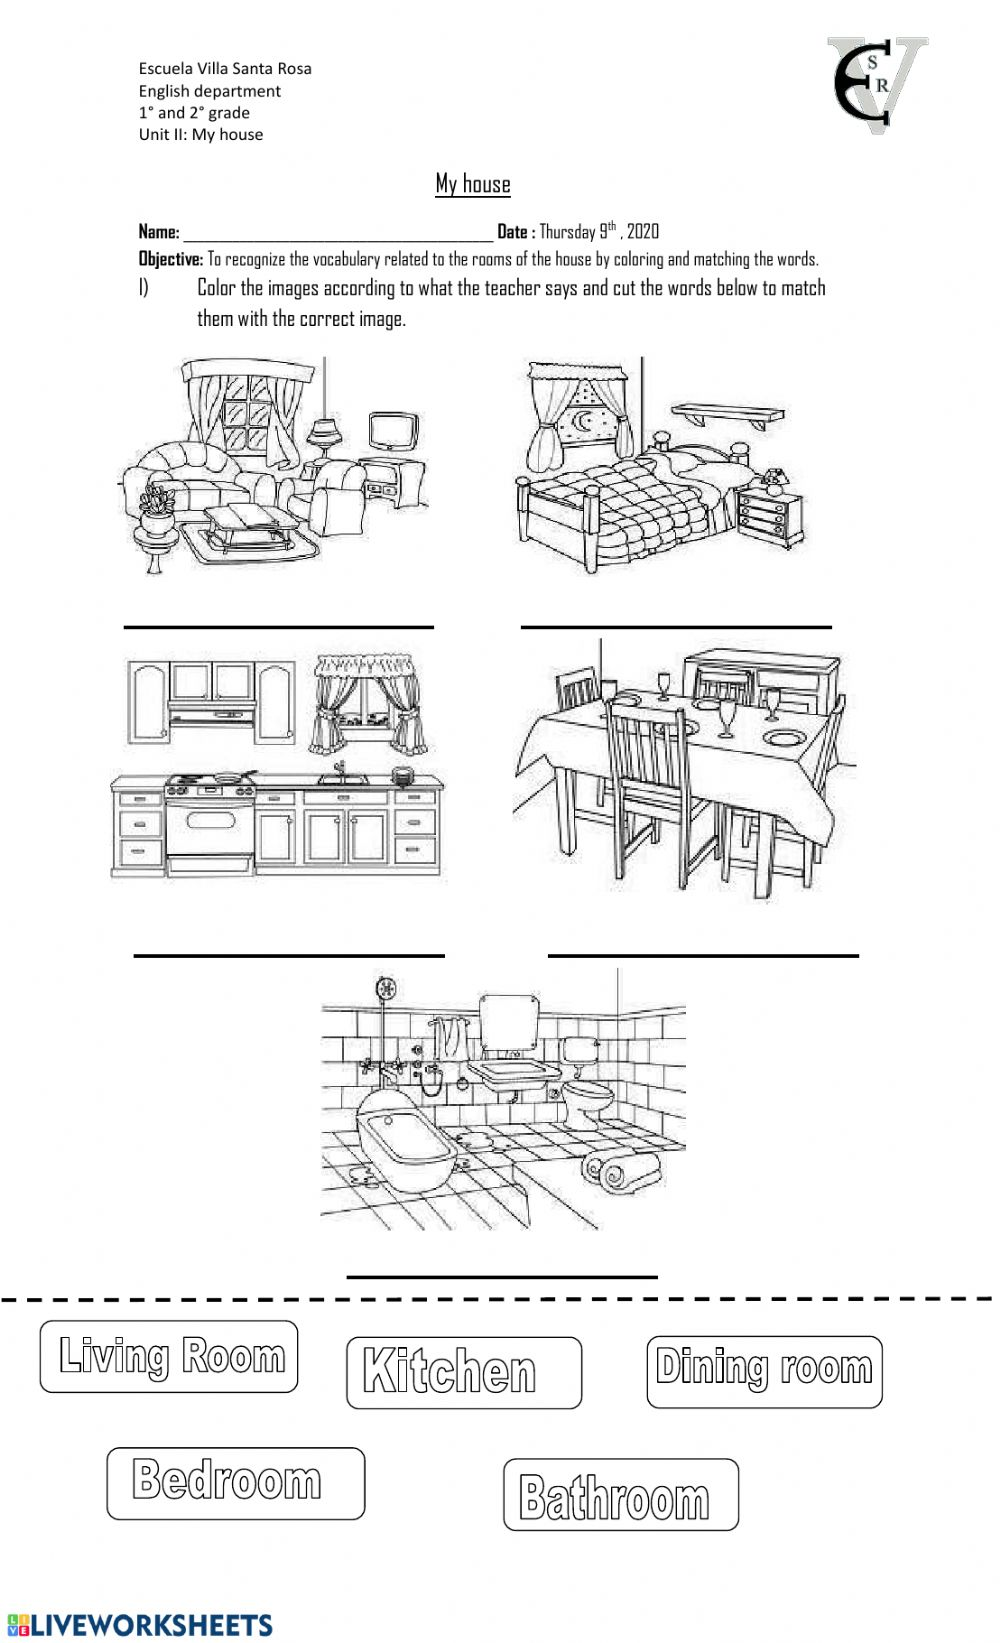 medium resolution of My house online worksheet for 1st and 2nd grade